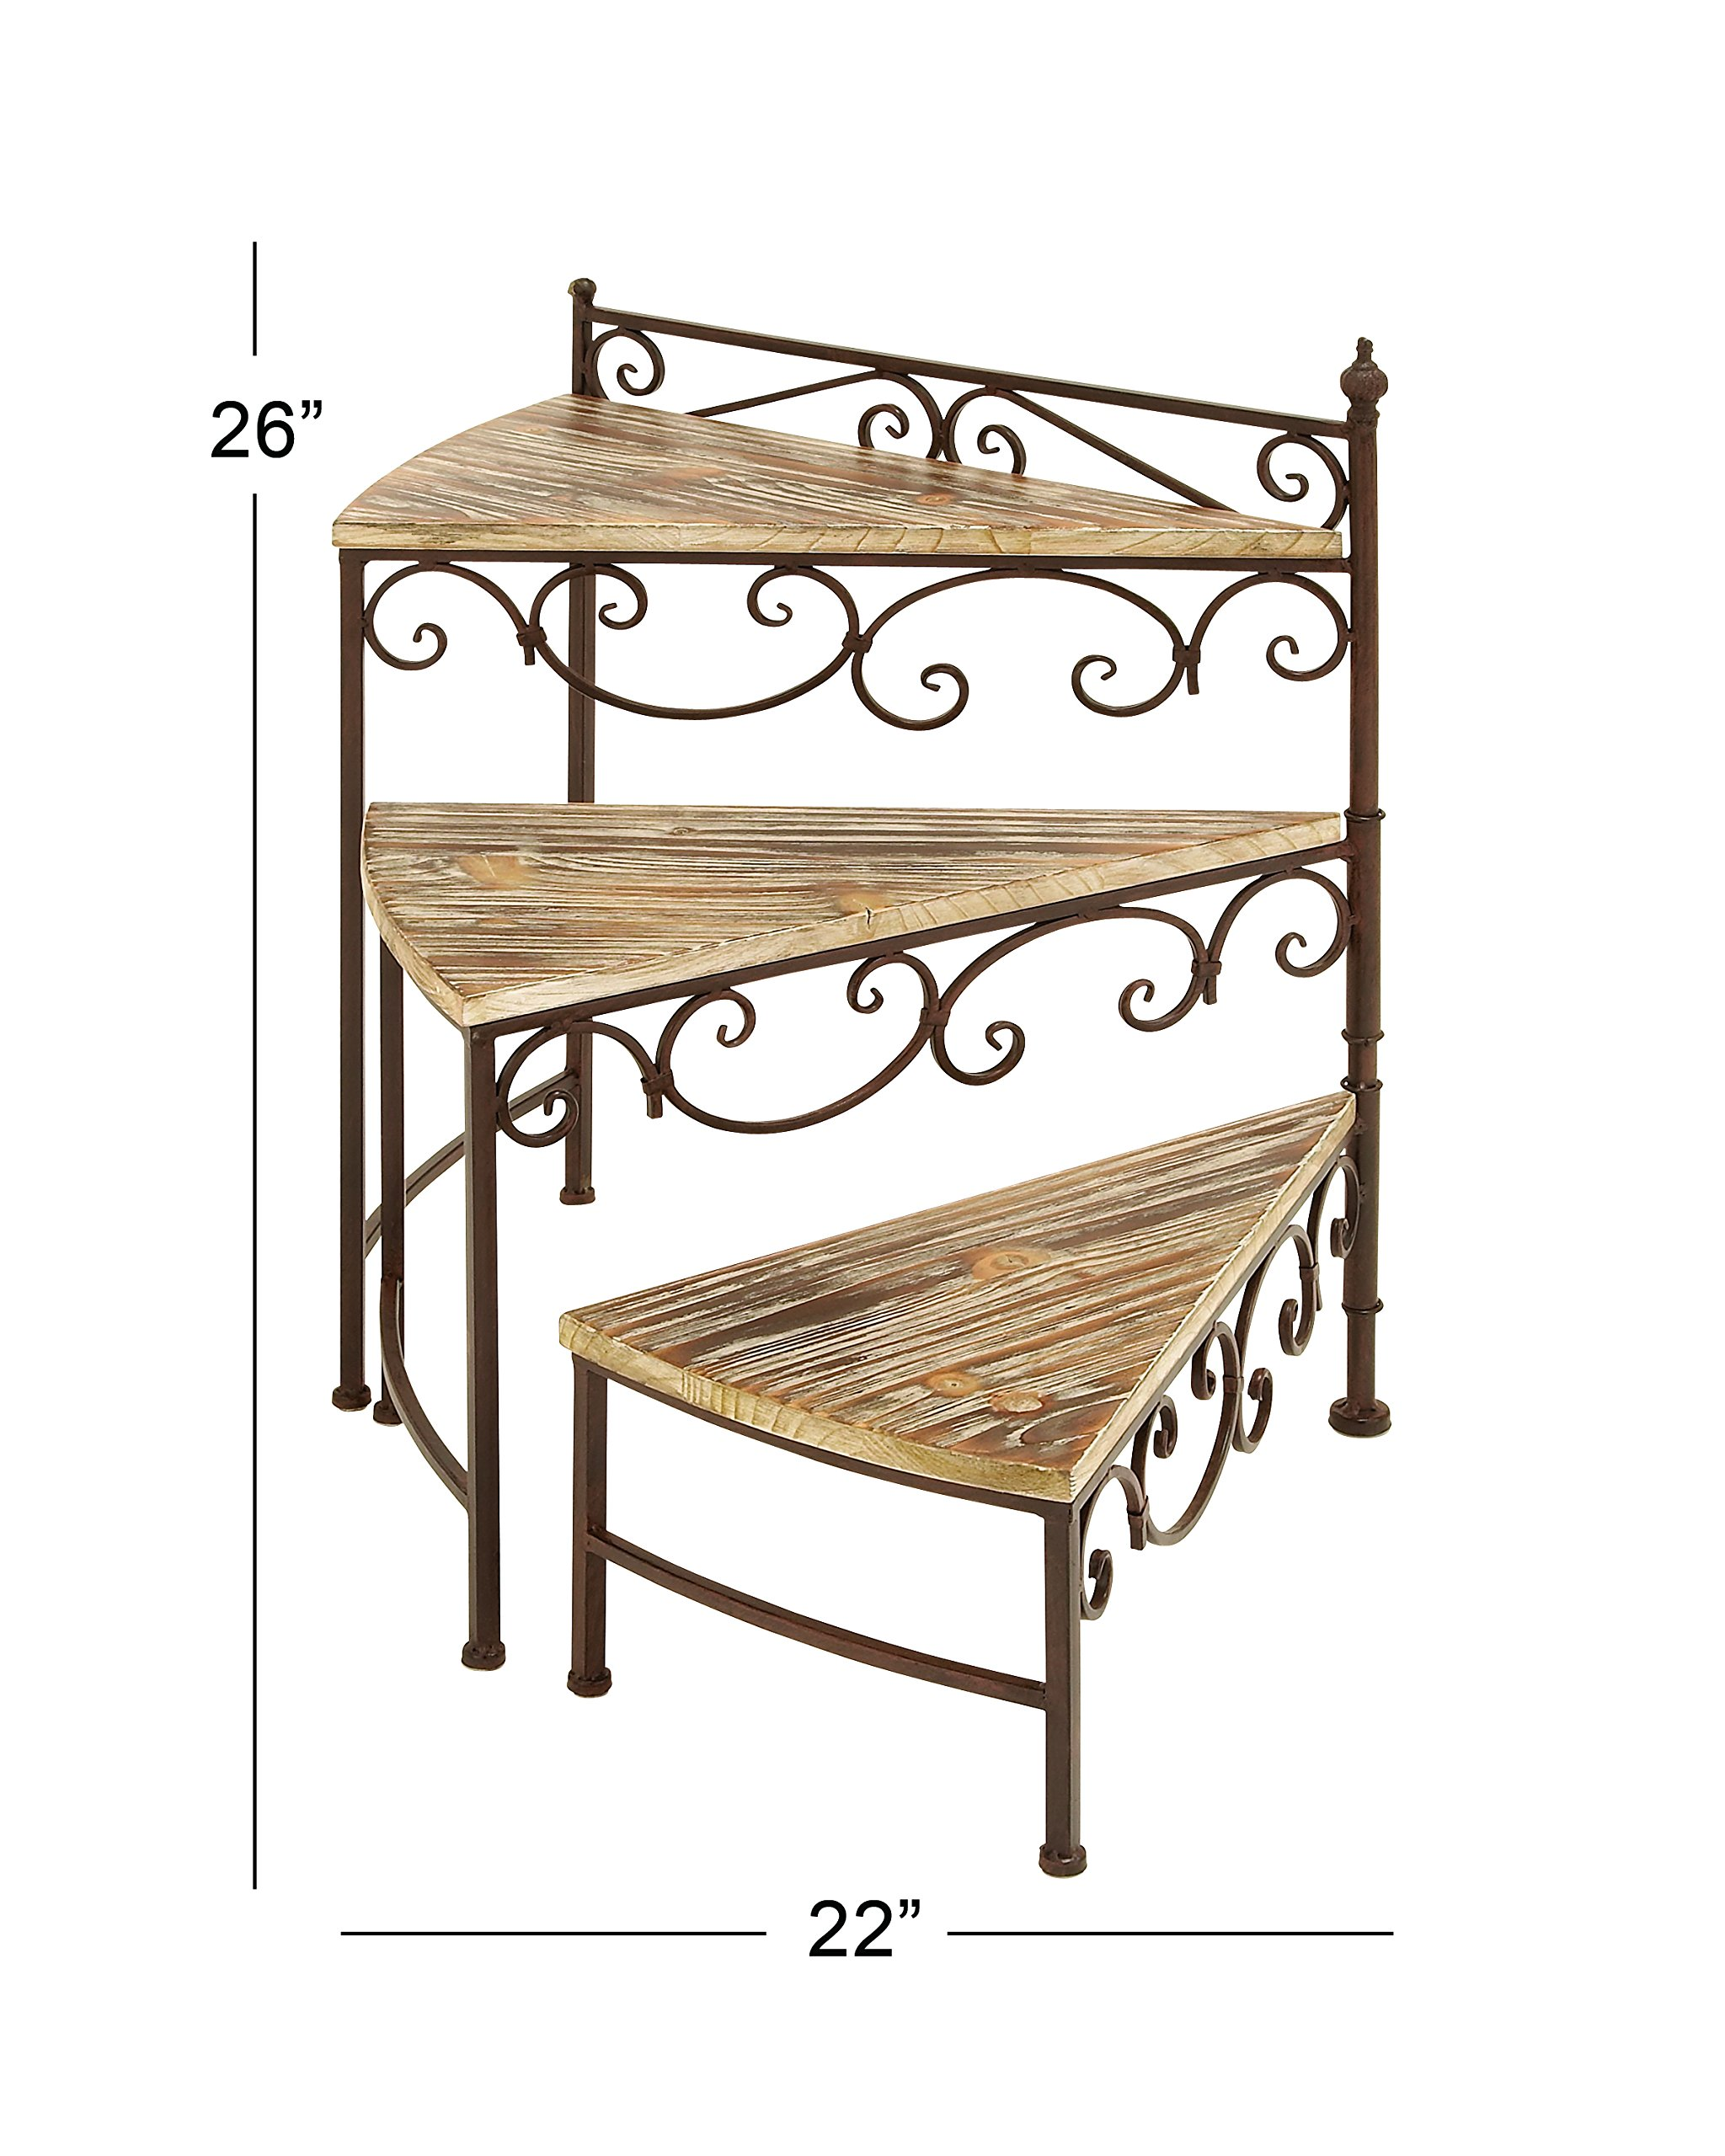 Deco 79 66552 Metal/Wood Rotating Stair Step Planter Stand, 22 by 26-Inch by Deco 79